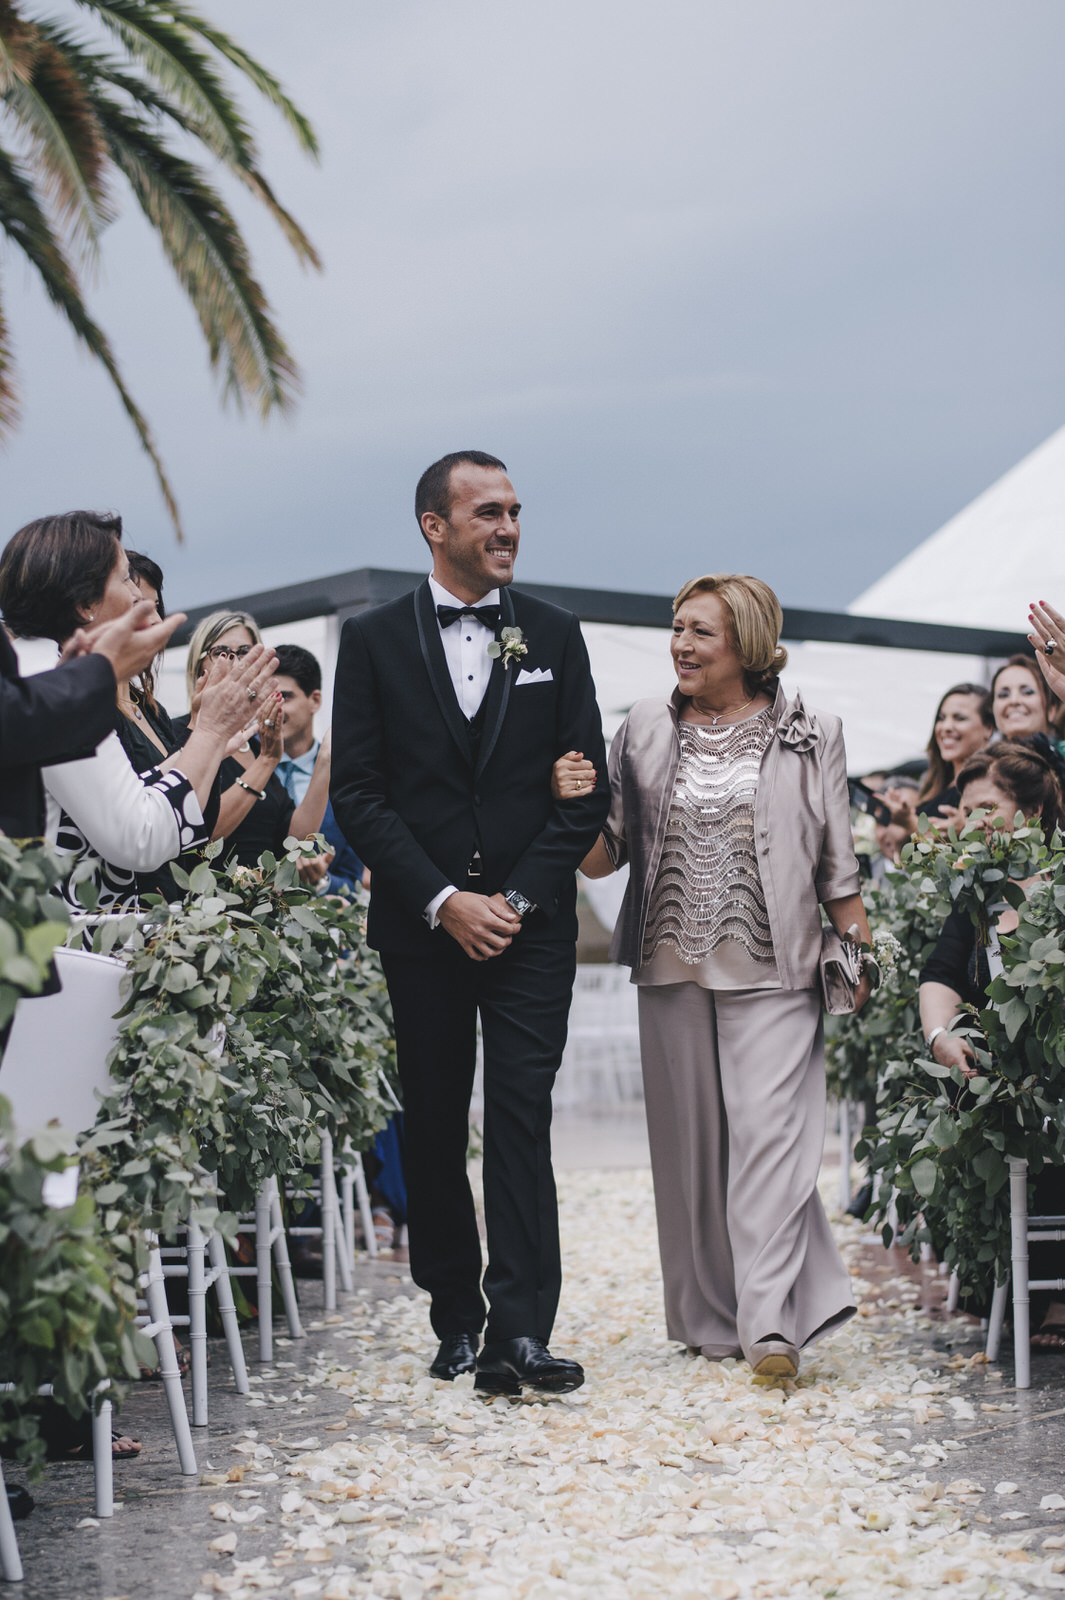 the groom walking down the aisle with his mother